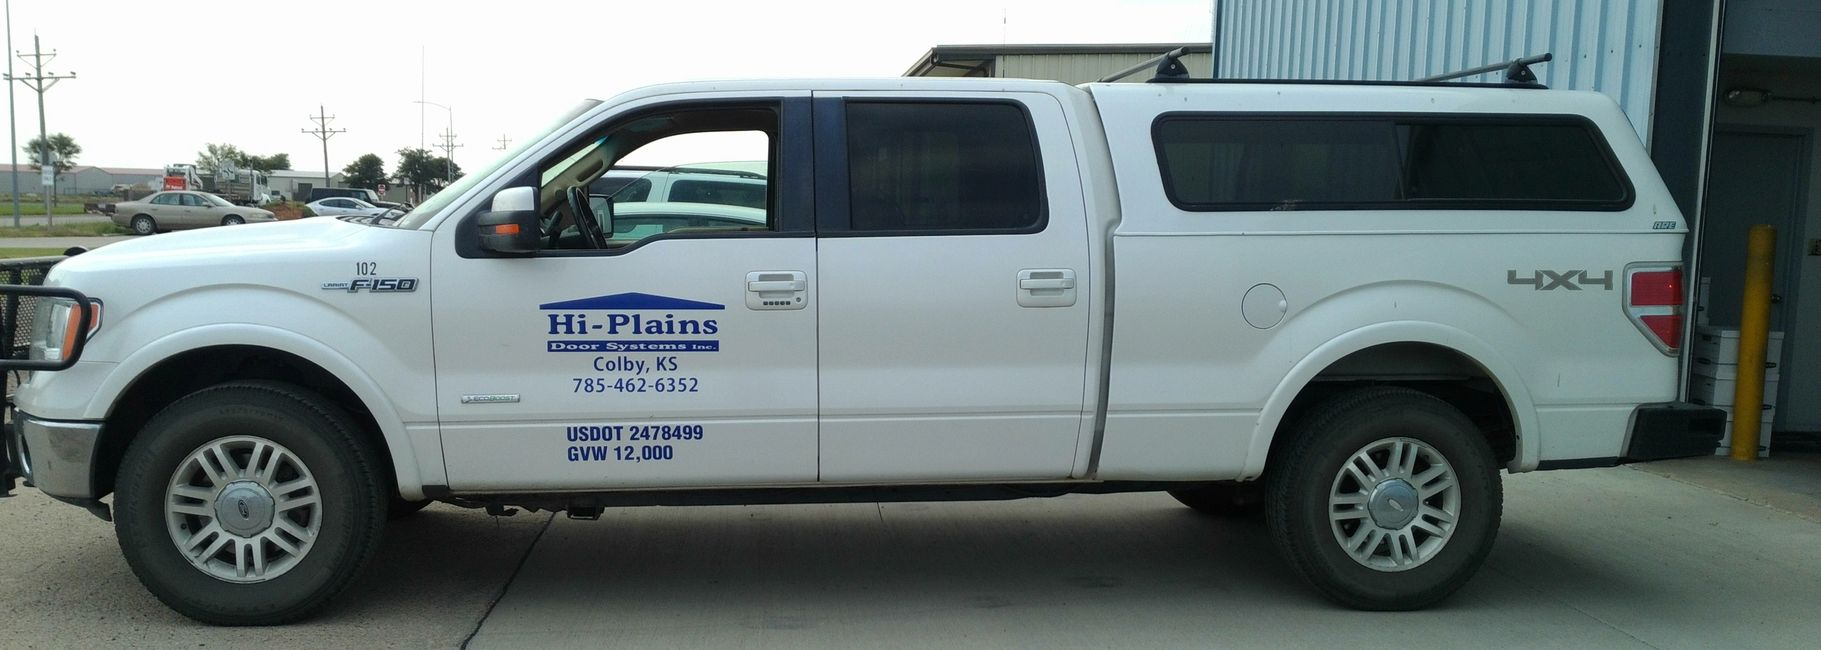 Hi-Plains Door truck